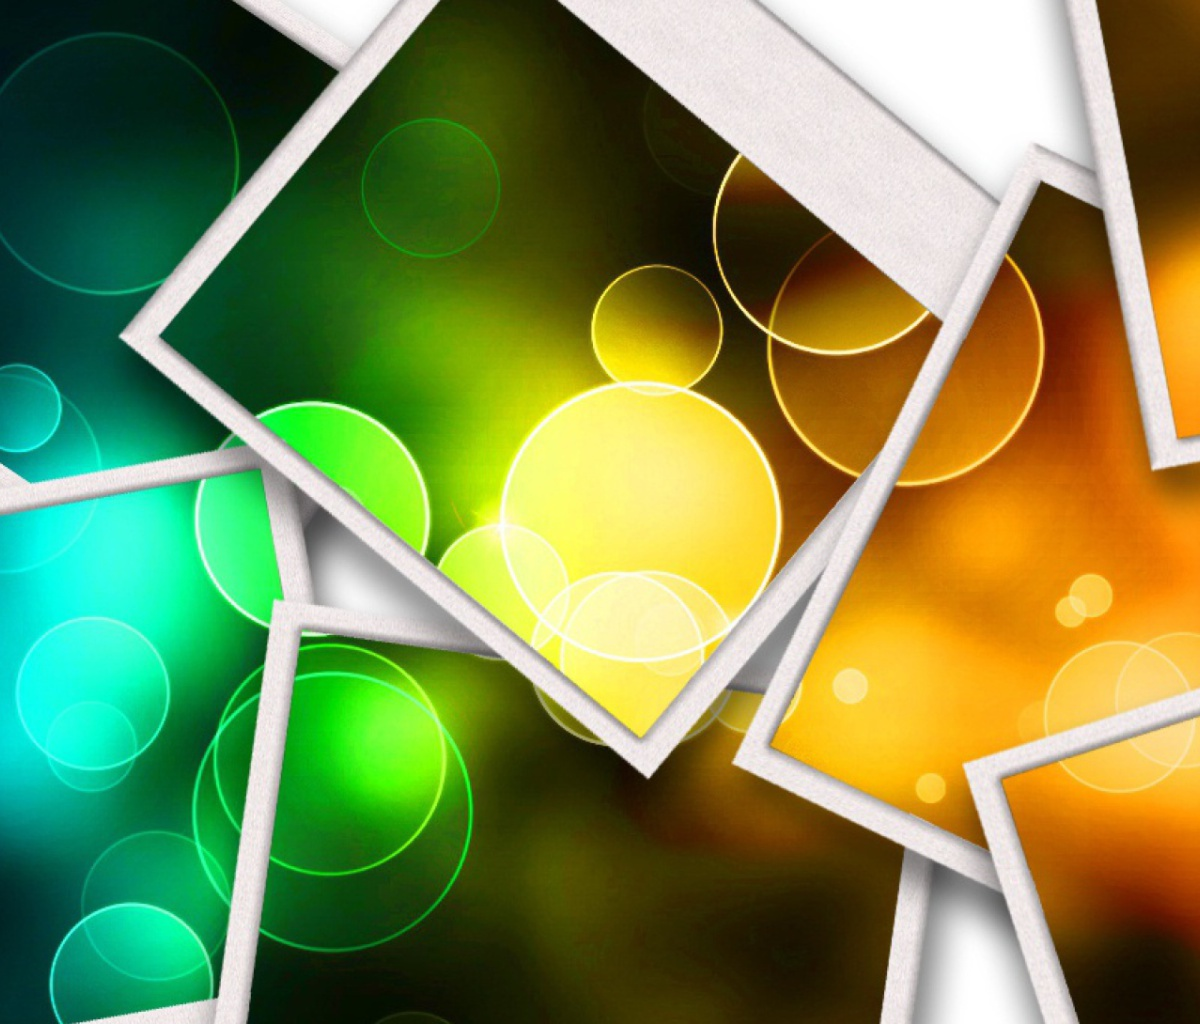 JUST HD WALLPAPERS: cool wallpapers for mobiles and tablets